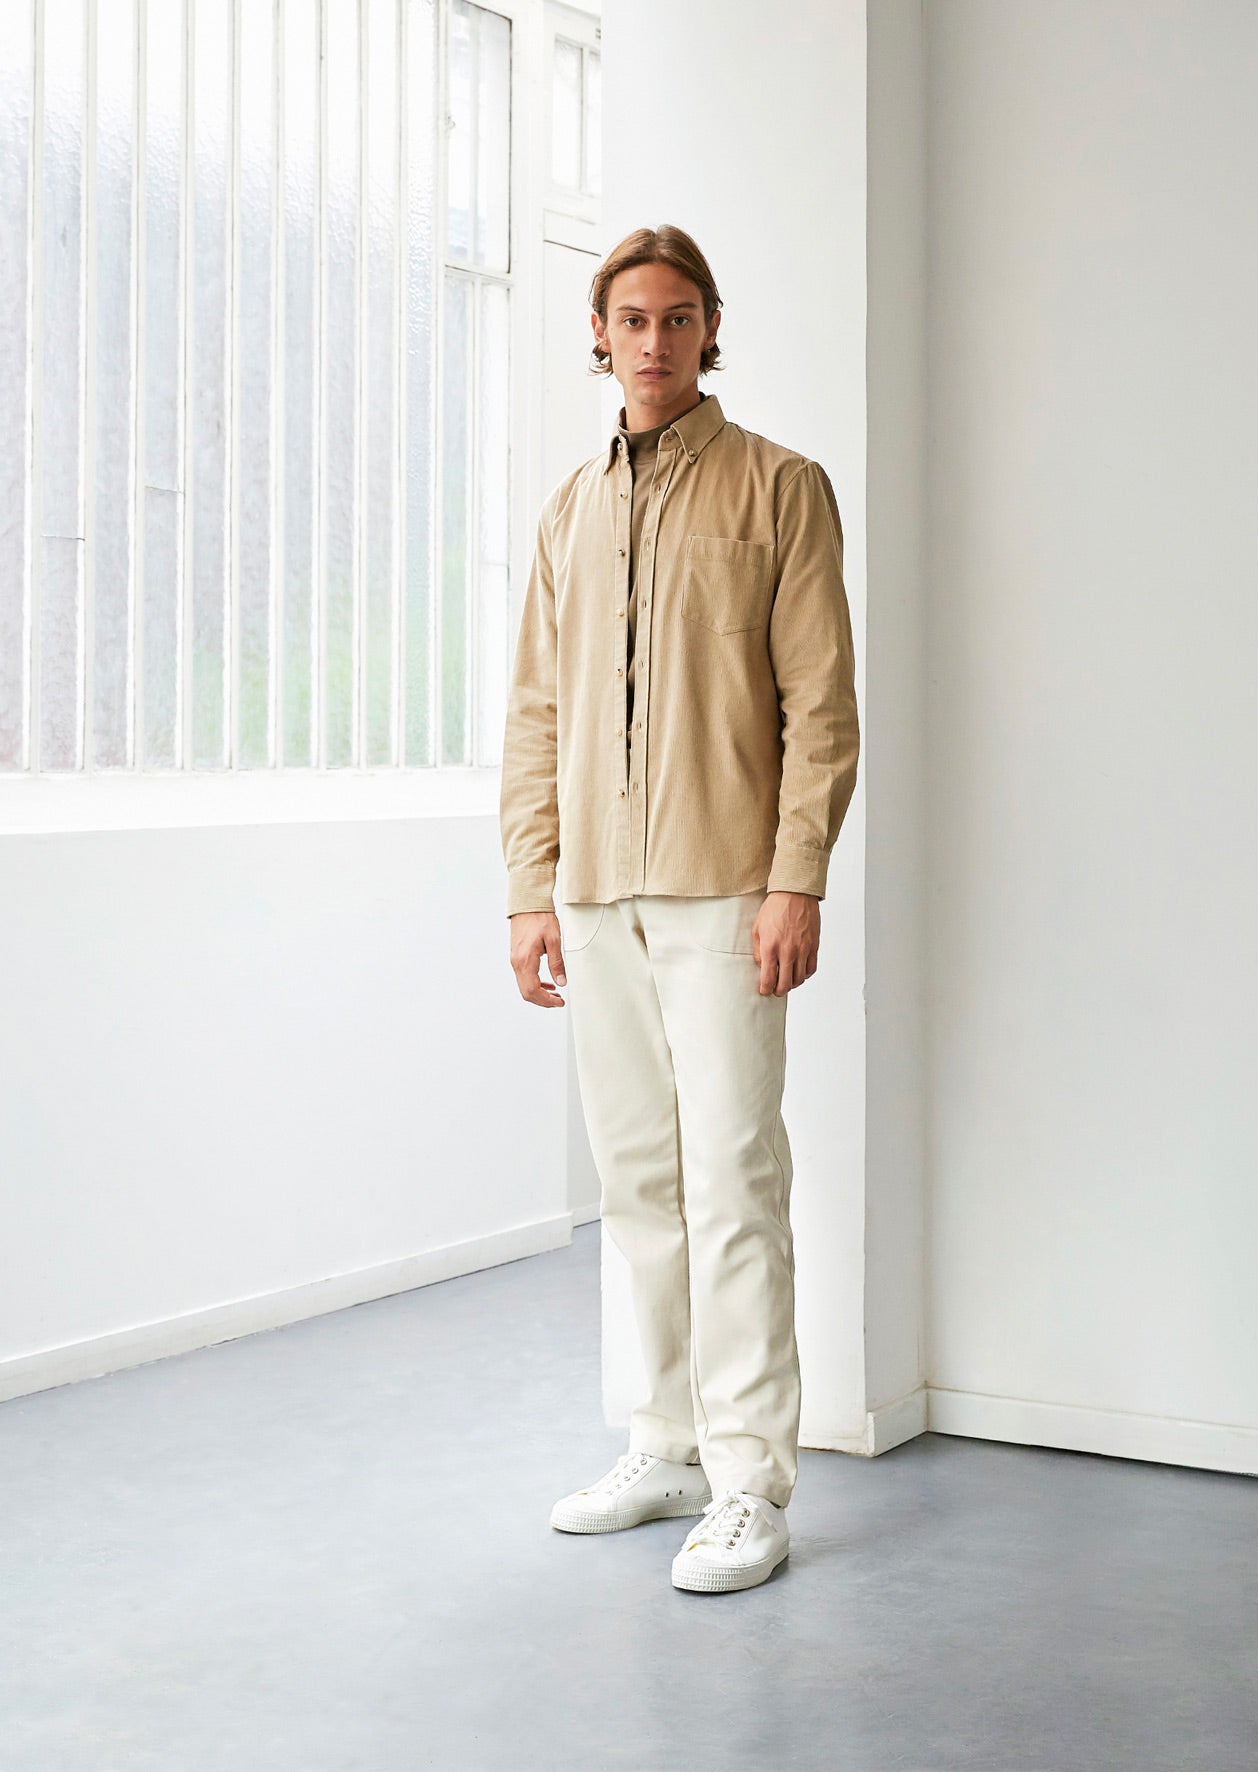 Buttondownshirt English needlecord beige